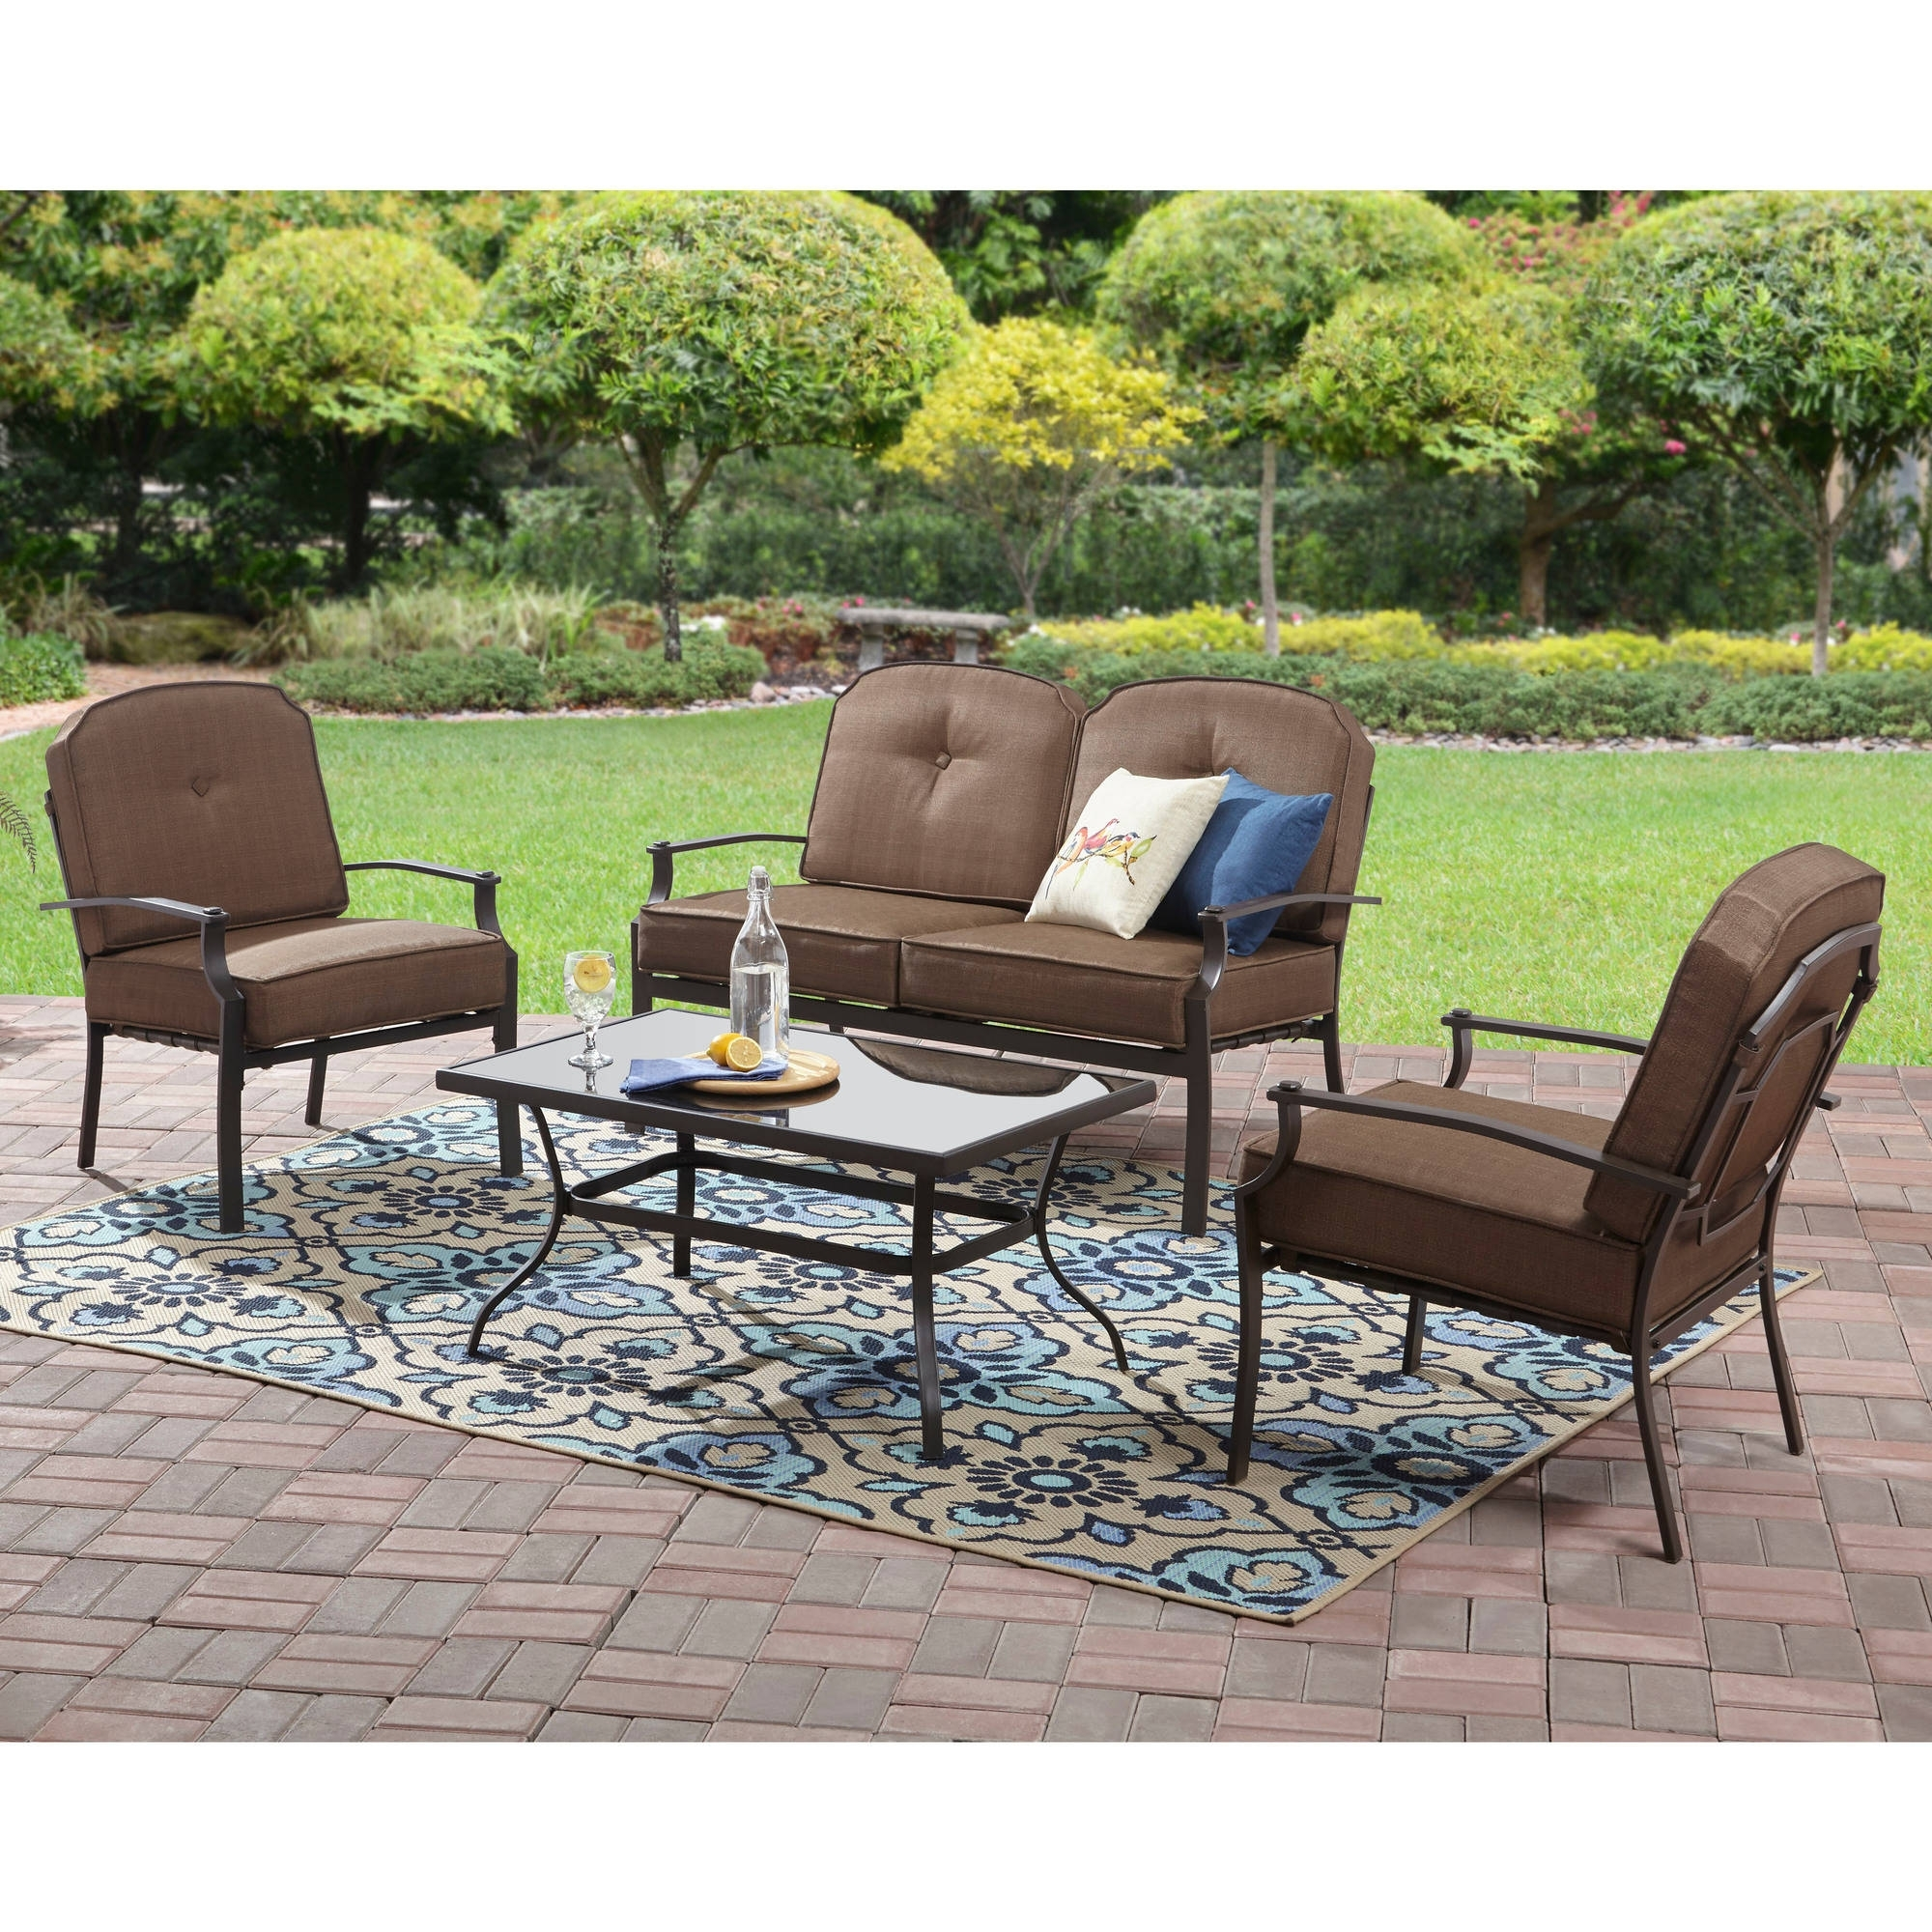 Latest Mainstays Spring Creek 5 Piece Patio Dining Set, Seats 4 – Walmart Intended For Steel Patio Conversation Sets (View 2 of 15)